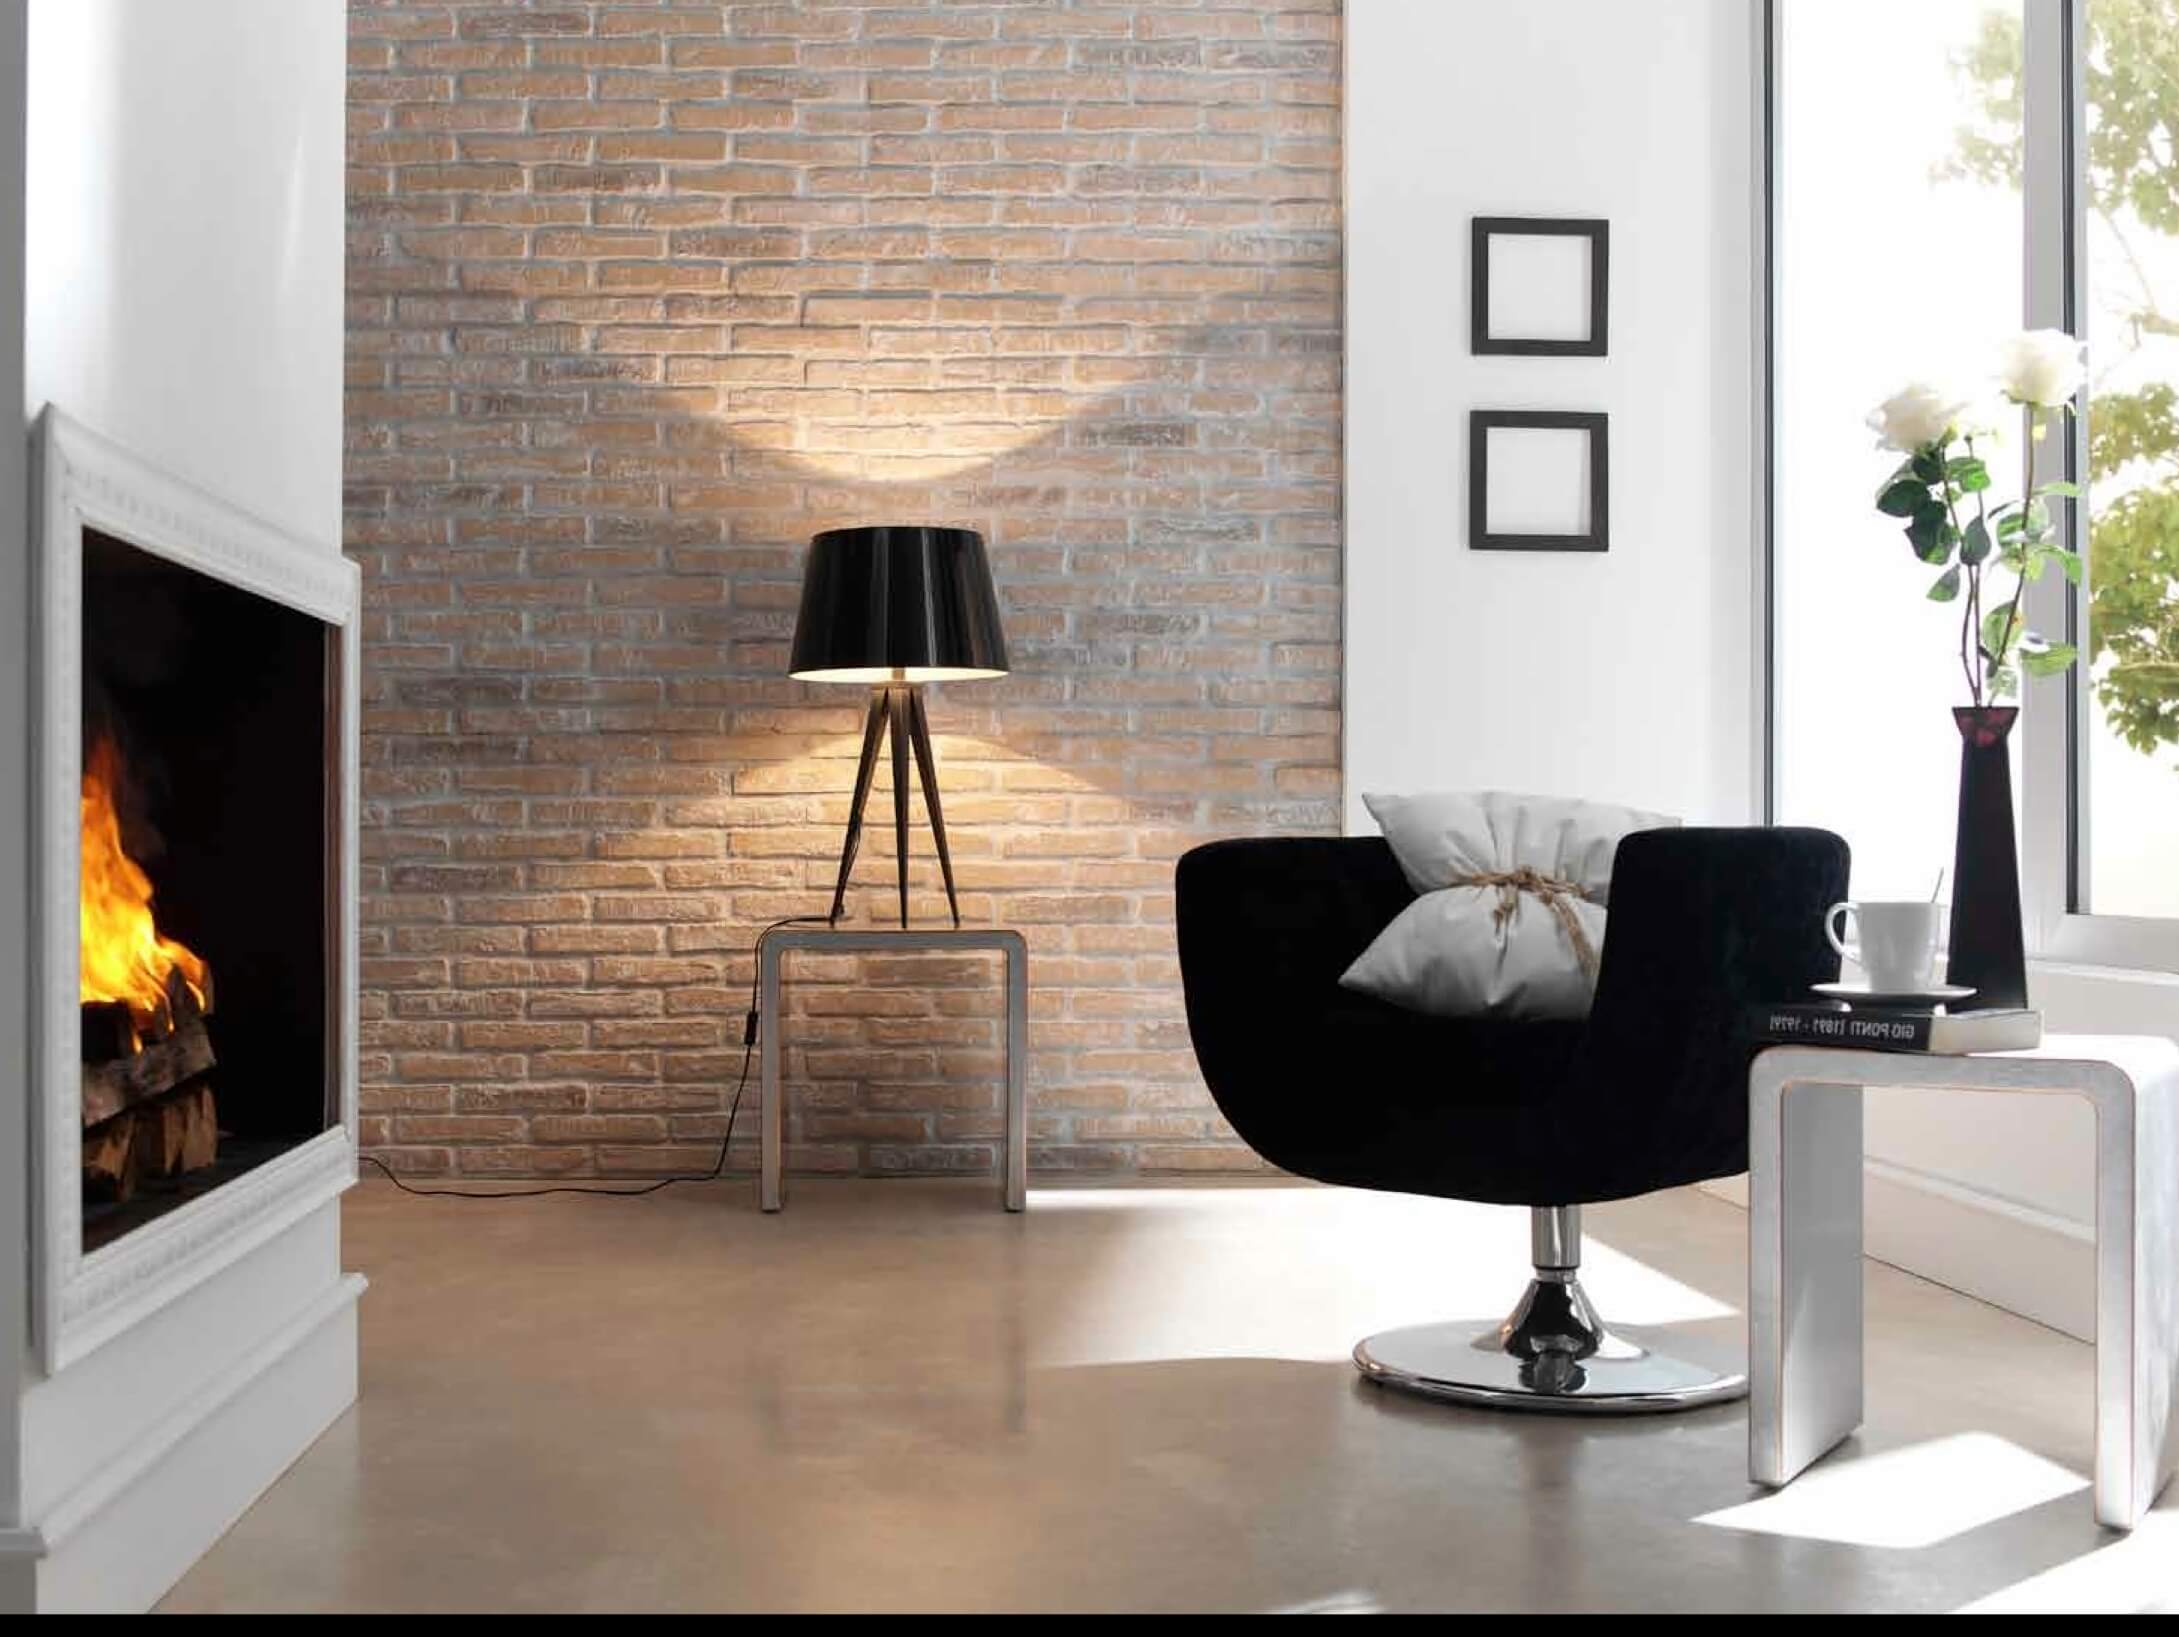 Brick provides a classy interior choice